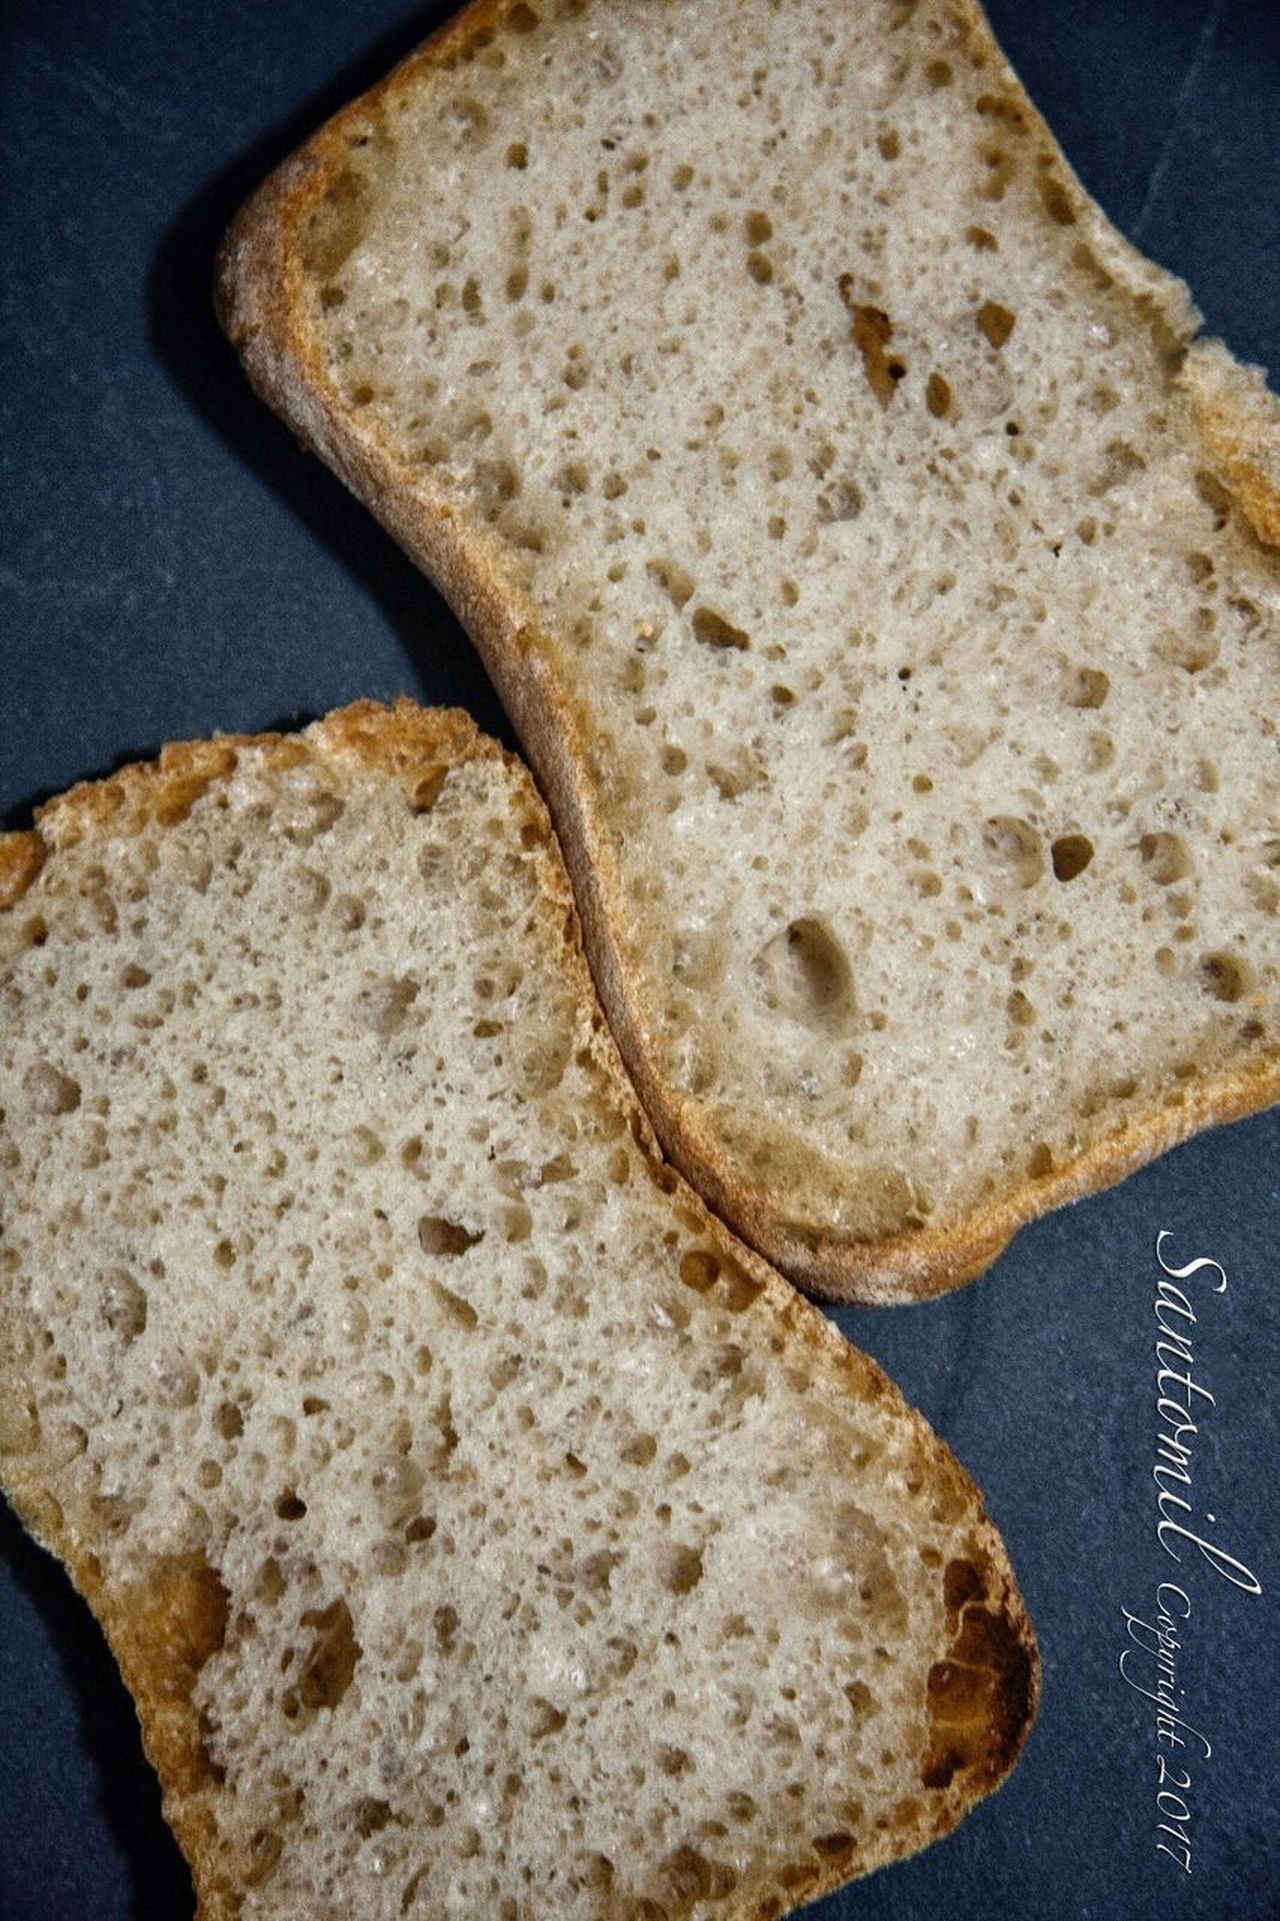 Producto EyeEmNewHere Bread Food Food And Drink Healthy Eating No People Indoors  Toasted Bread Breakfast SLICE Ready-to-eat Sliced Bread Freshness Flatbread  Pita Bread Close-up Panaderia Pan Comidas